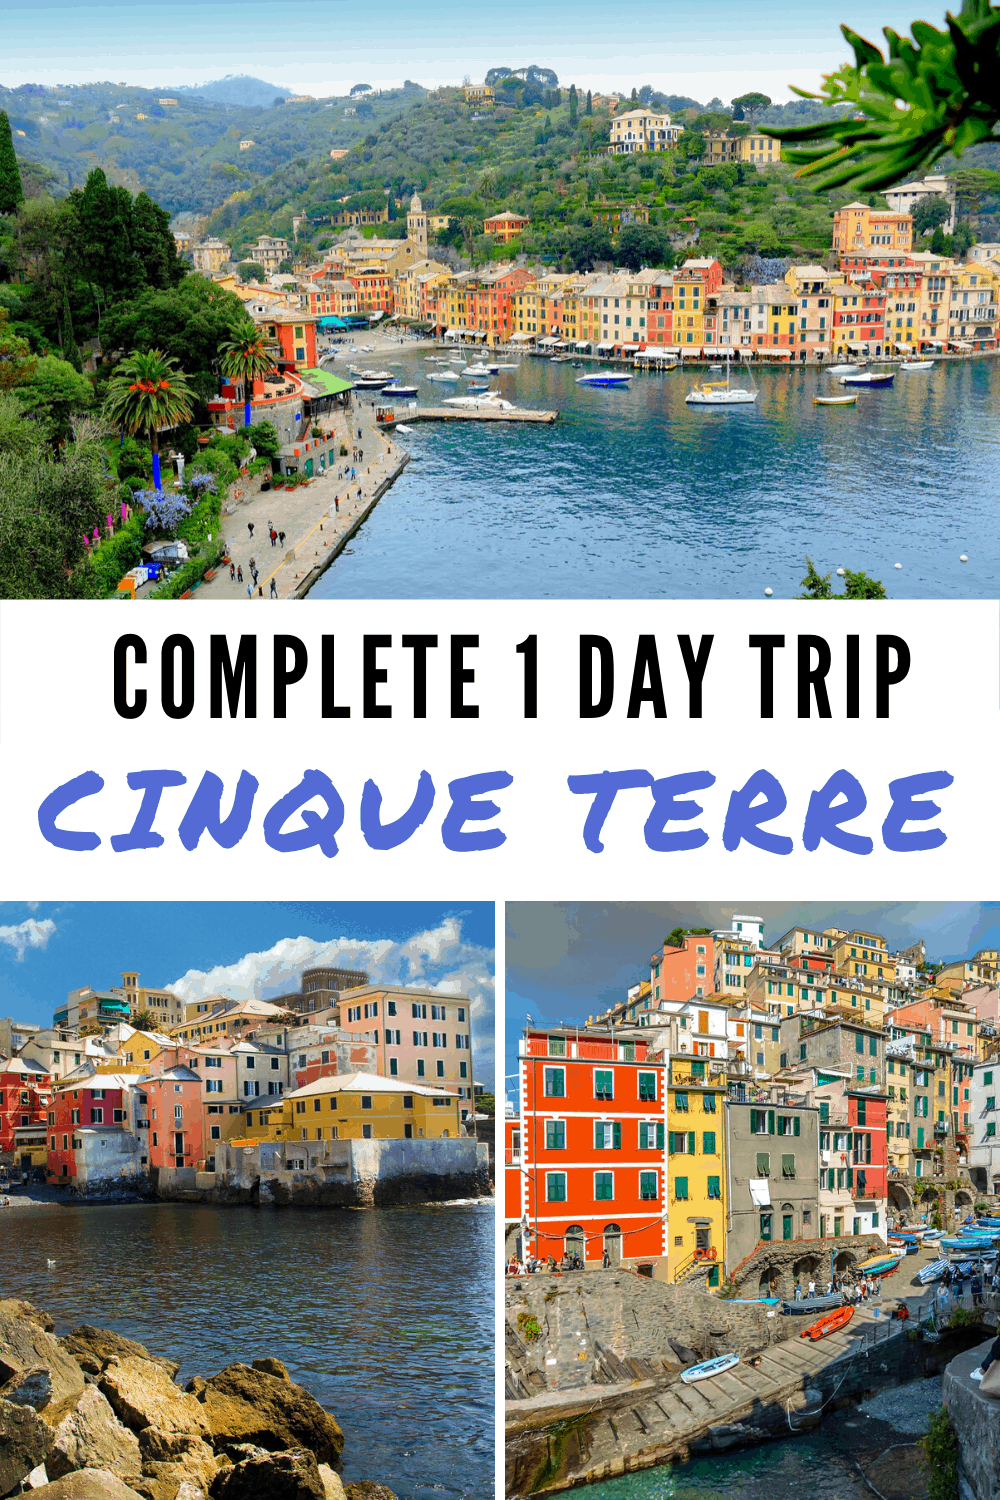 The perfect day trip to Cinque Terre itineraries you must check out! I'll help you best plan your Italy vacation and make the best out of your Cinque Terre from Florence day trip, or even Cinque Terre from Milan escape. Tips and tricks for when you travel Italy and want to live it to the fullest. See Riomaggiore, Vernazza, Manarola, Corniglia, and Monterosso and love it! #travel #italy #cinqueterre